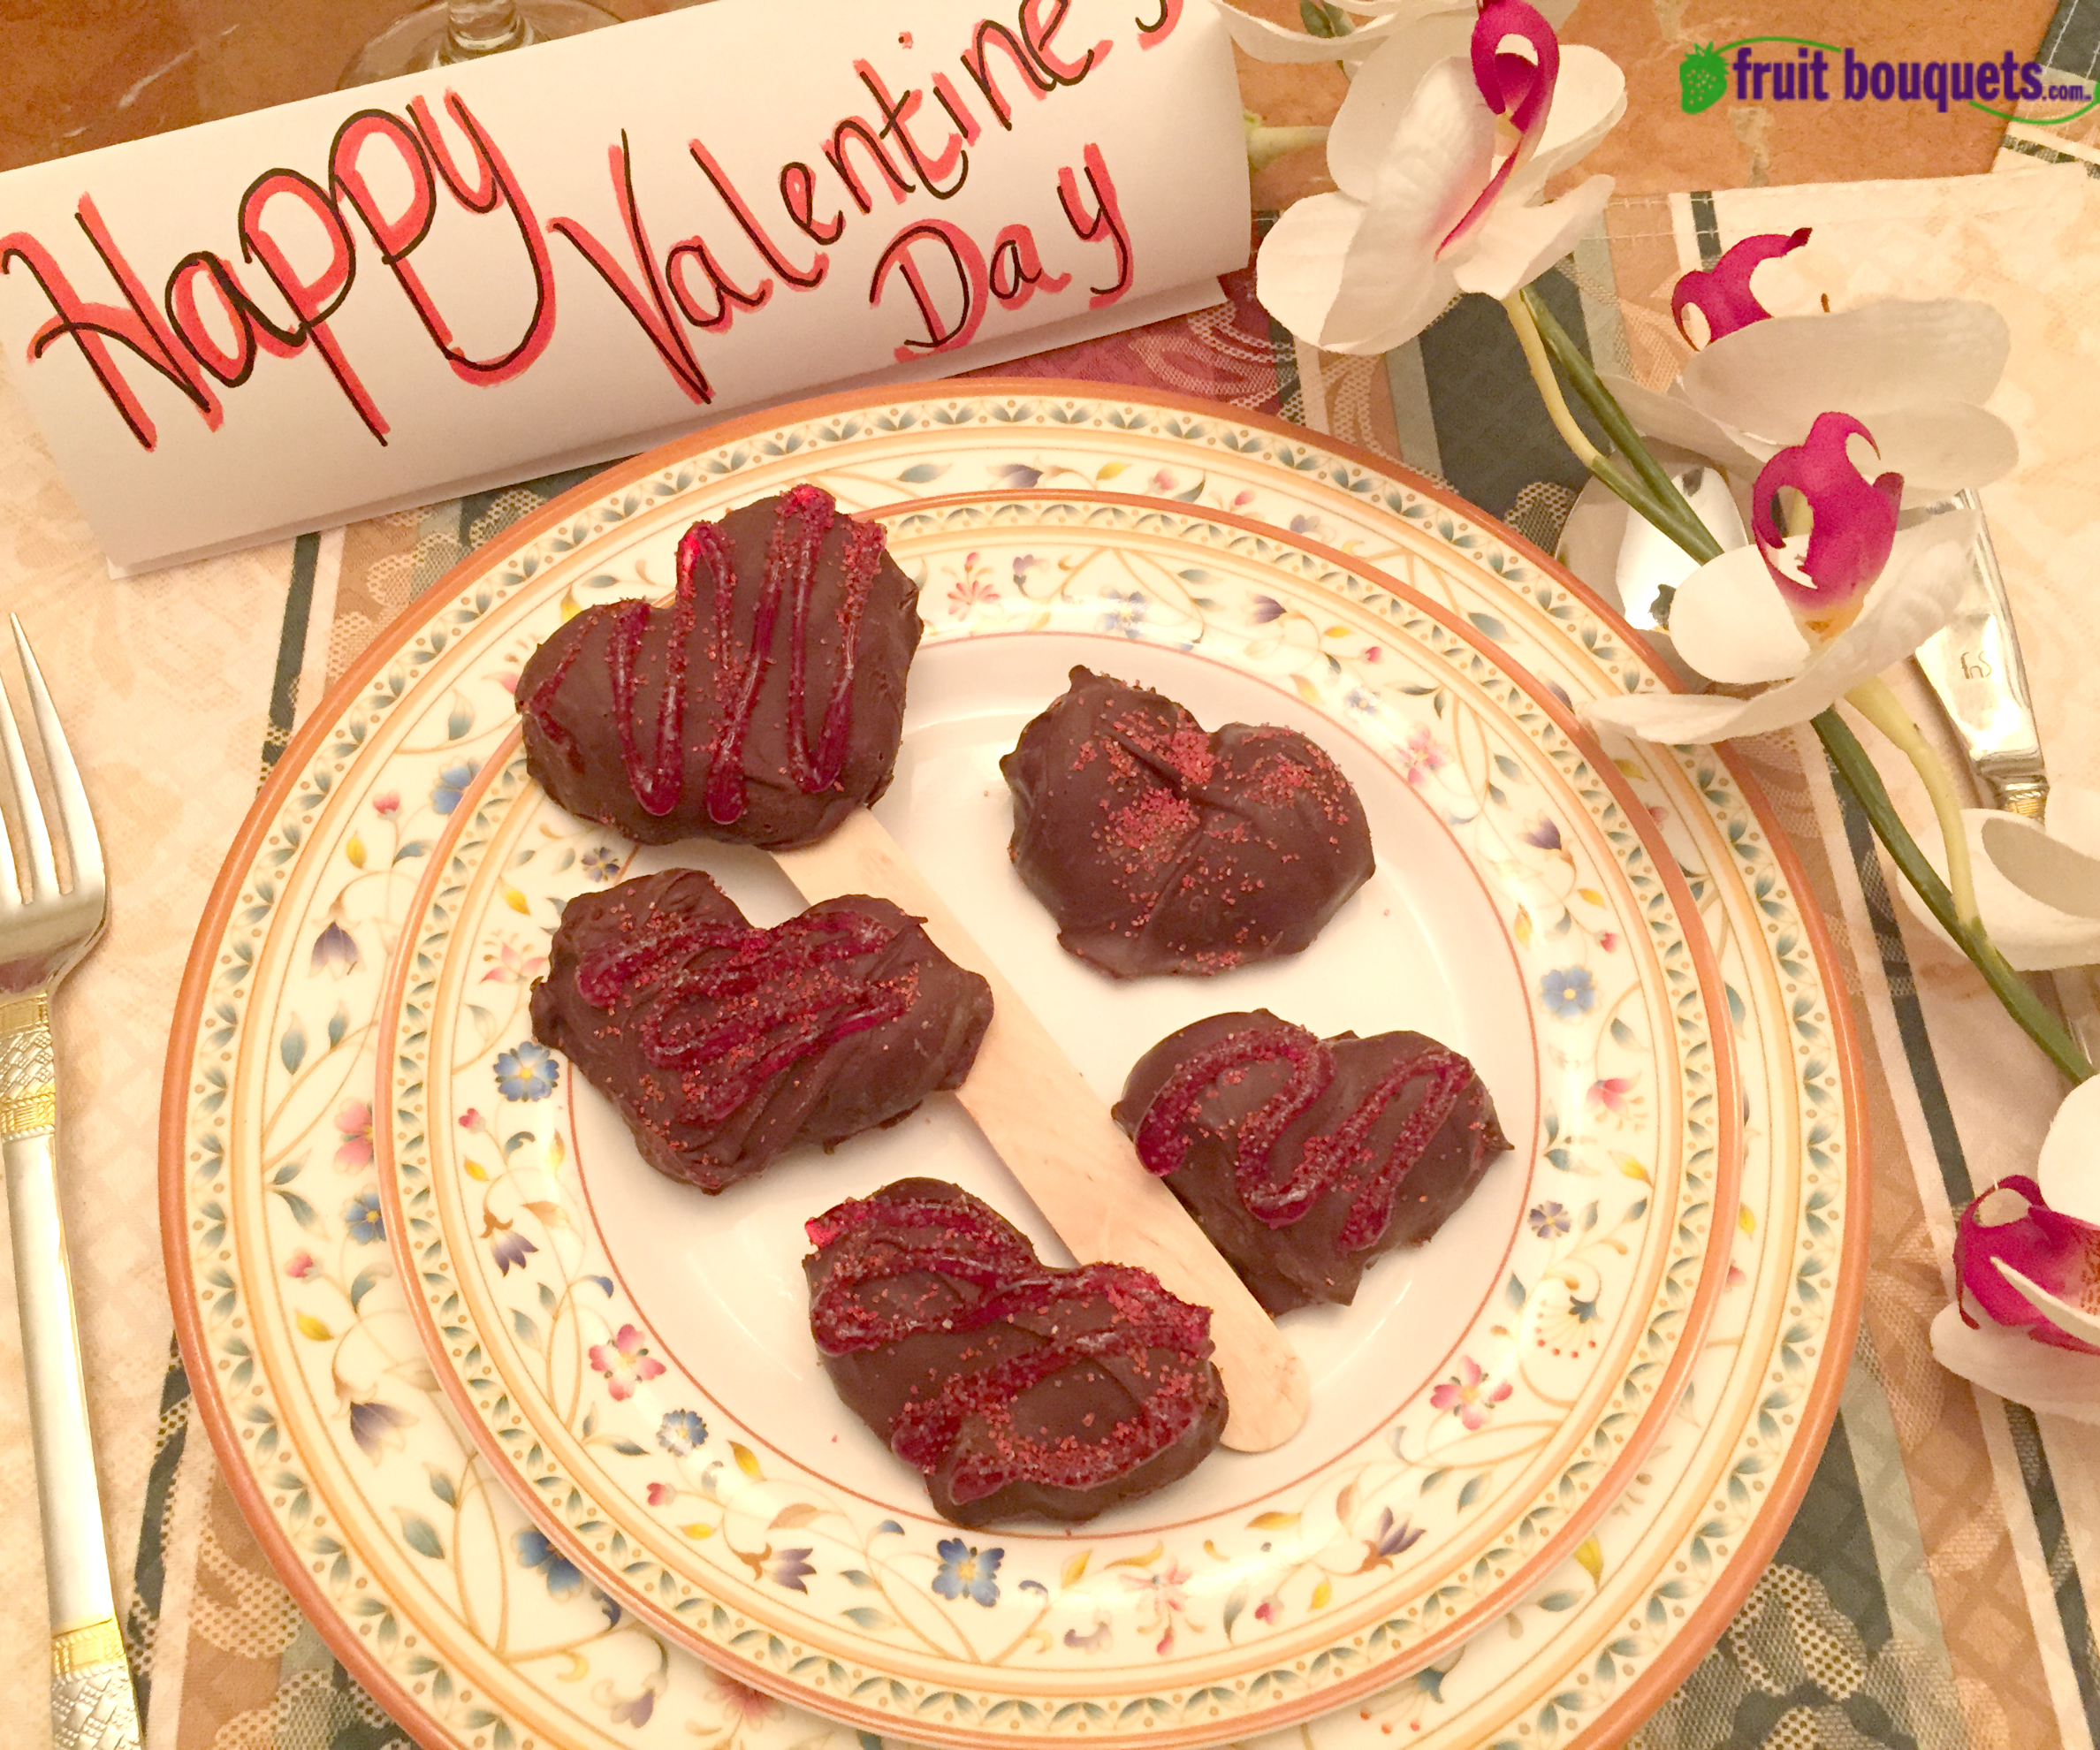 Fruit Bouquets' How to Make Valentines Chocolate Covered Strawberry Candy Hearts